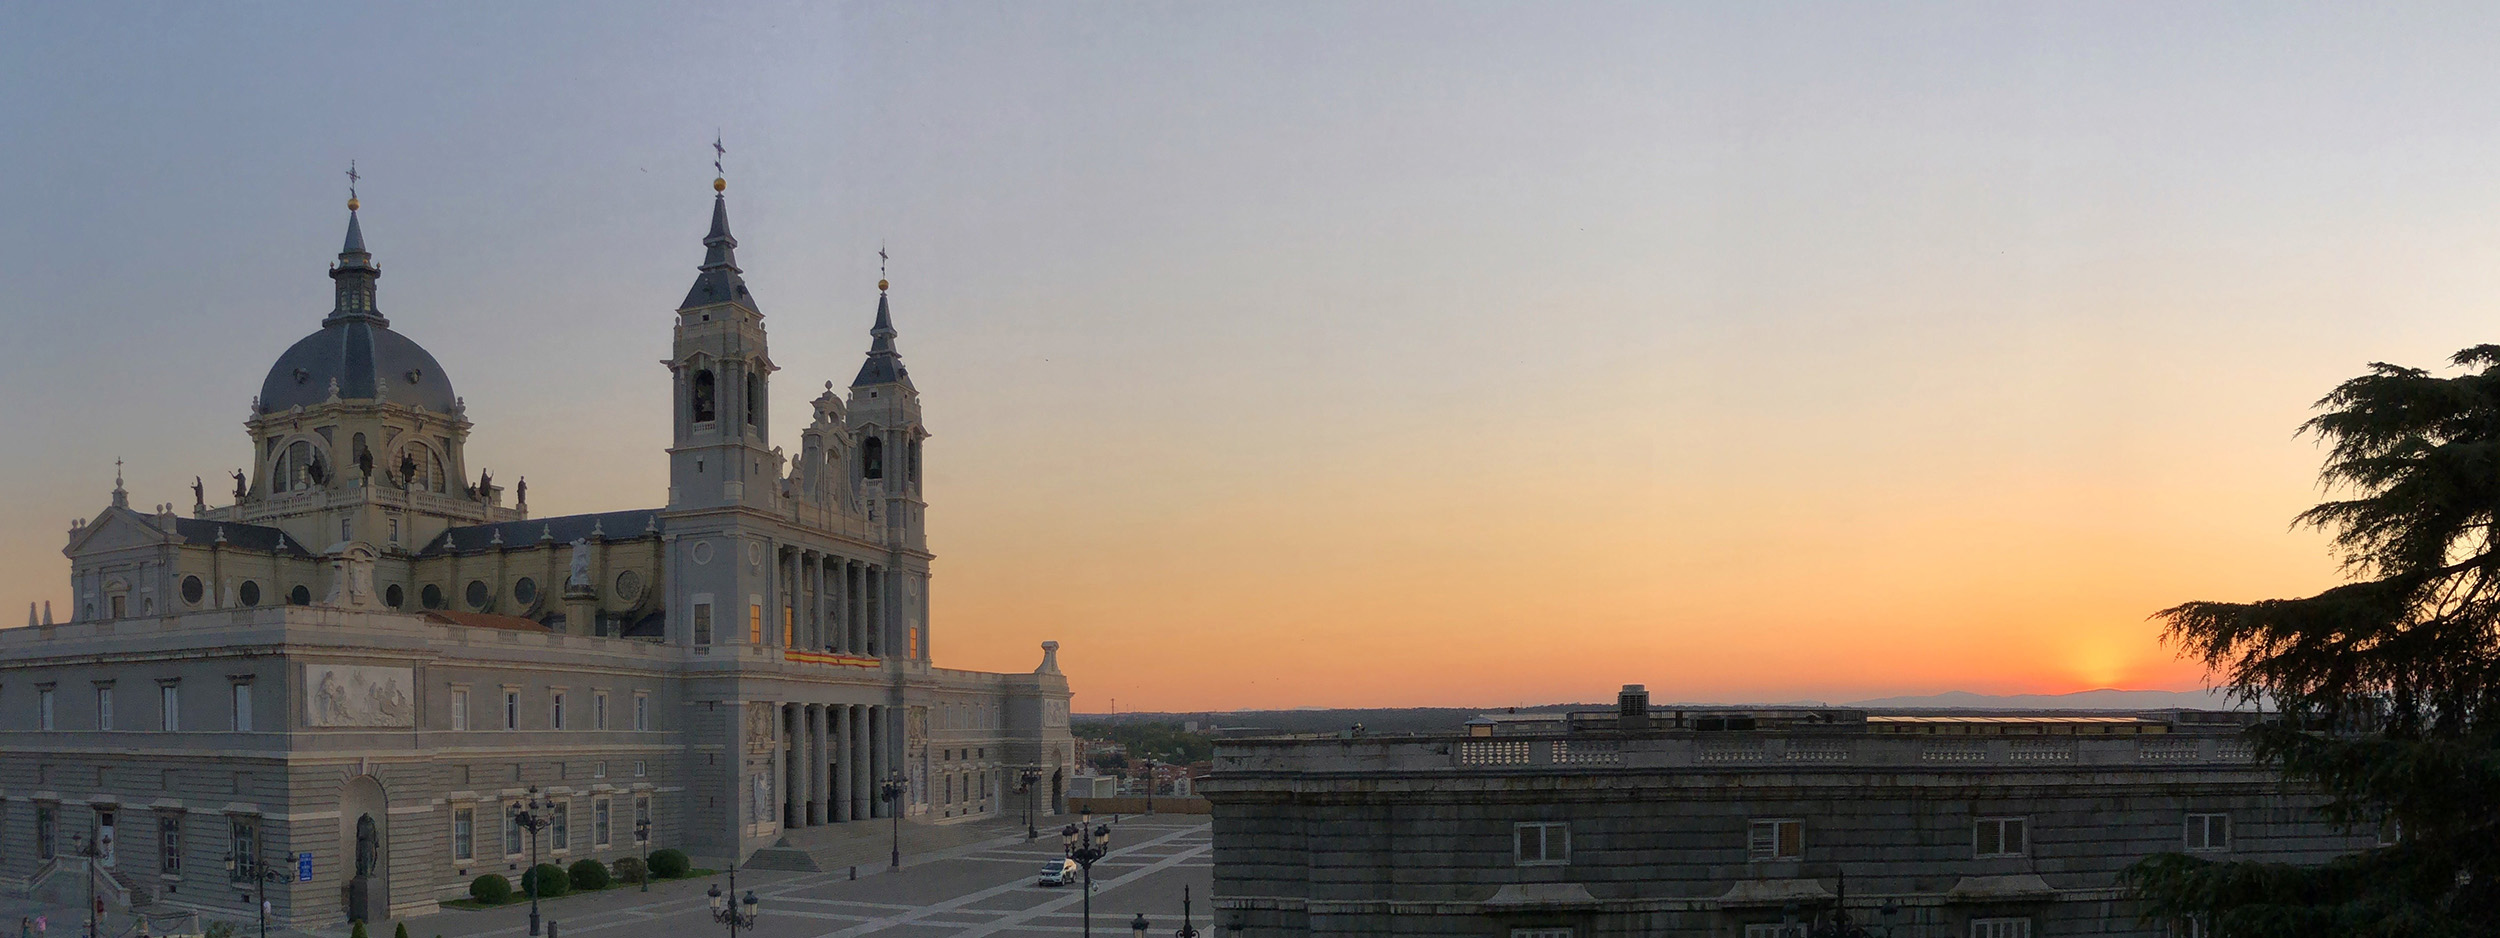 A panorama of a sunset over the royal palace and cathedral of Madrid.